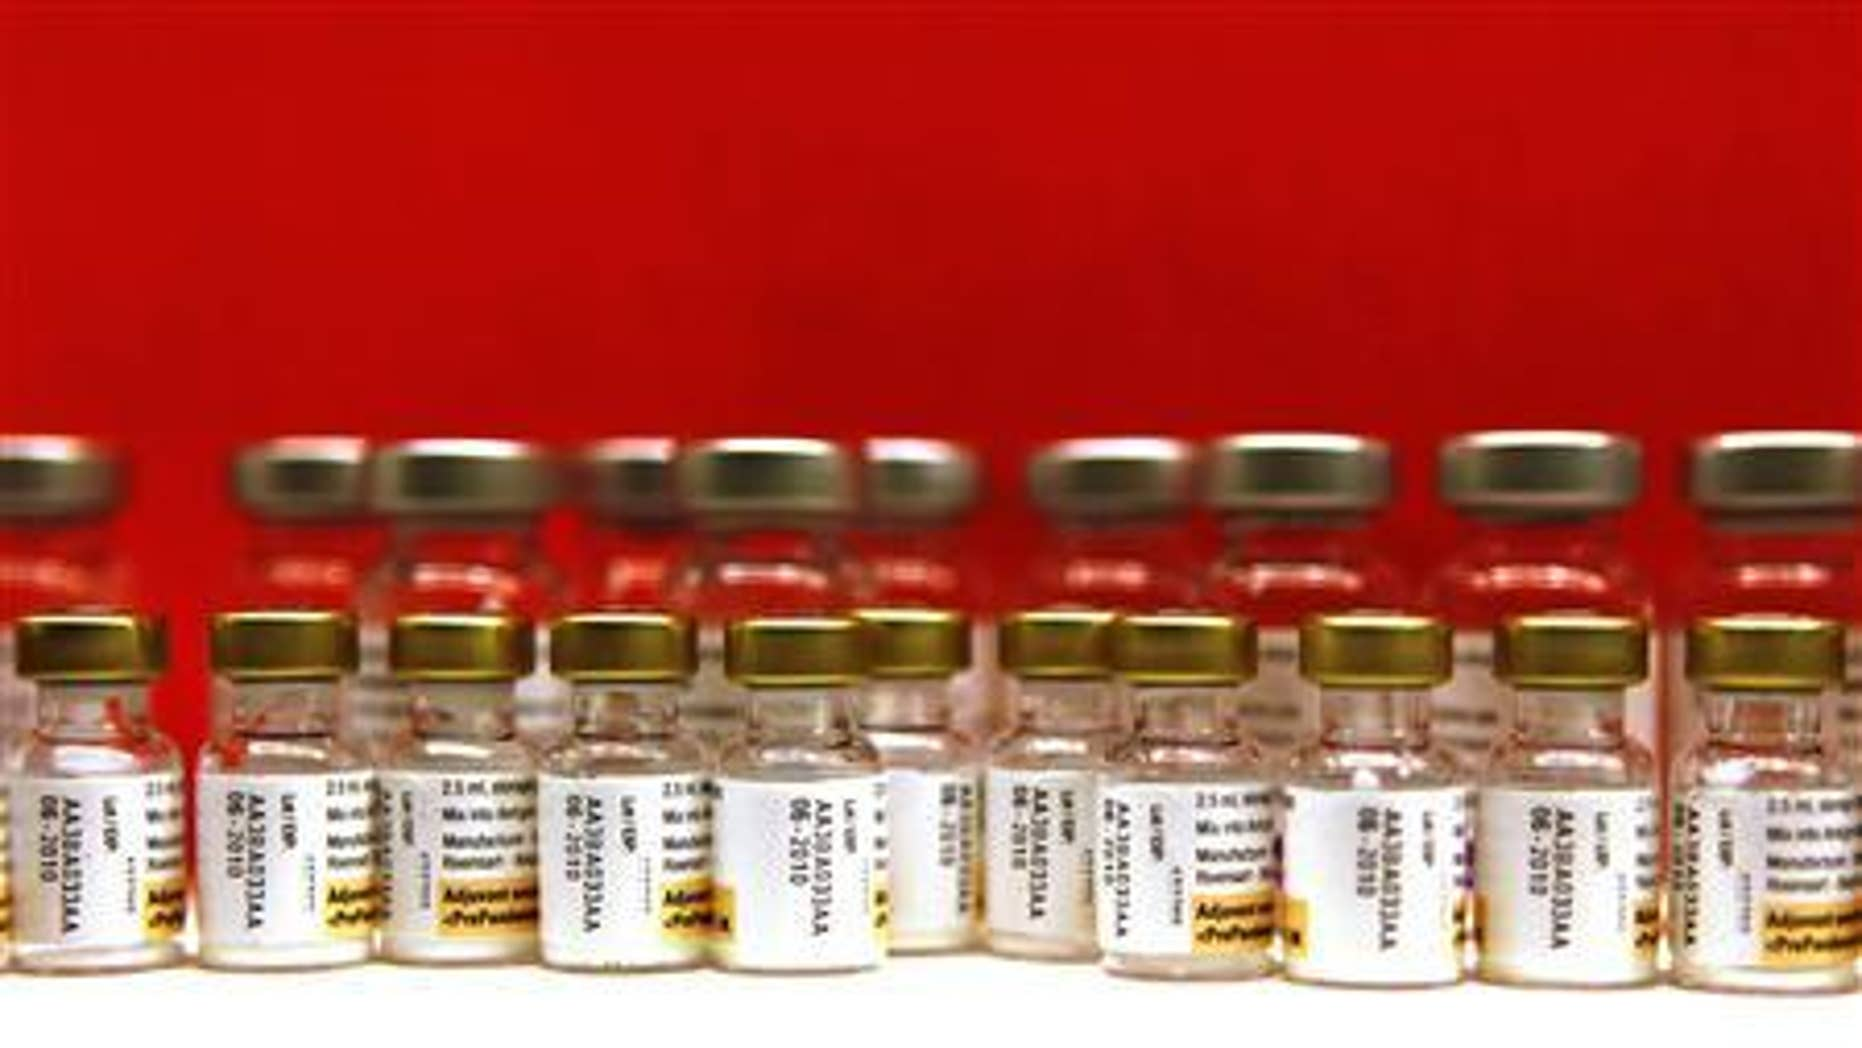 Bottles of adjuvants for use with the Pandemrix H1N1 flu vaccine are seen lined up during a vaccination programme in Schiedam in this November 23, 2009 file photo. REUTERS/Jerry Lampen/Files